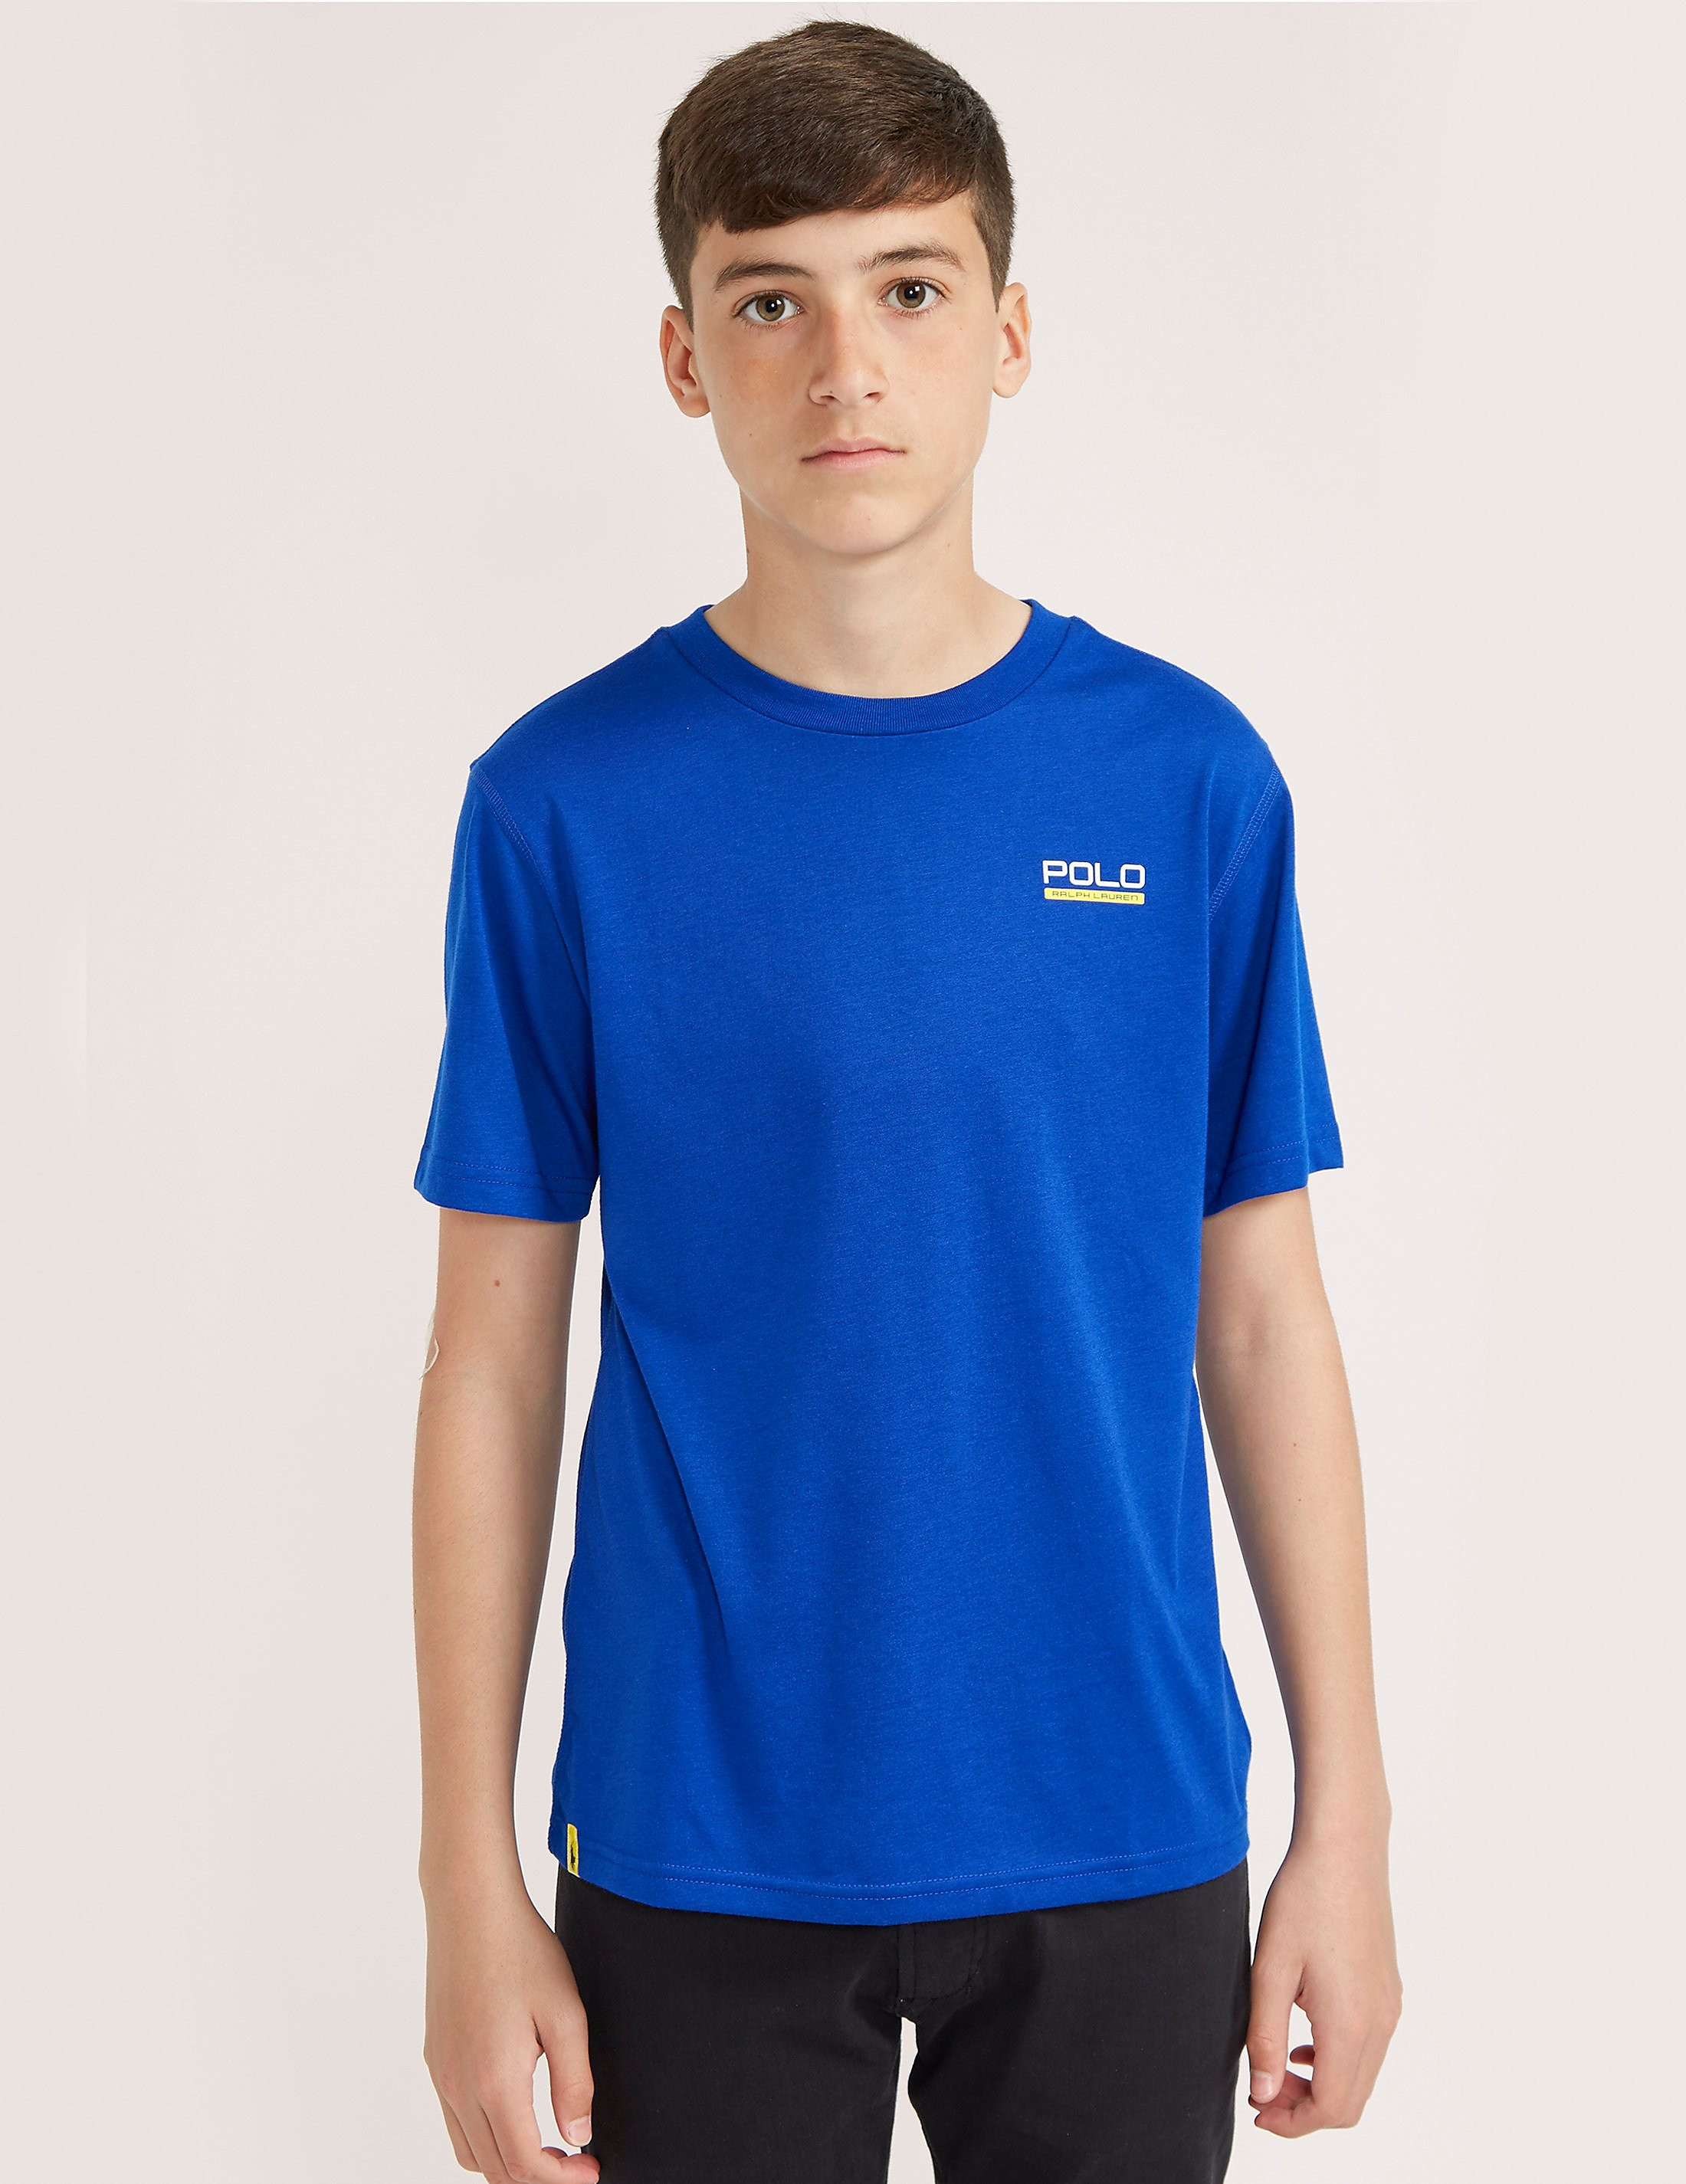 Polo Ralph Lauren Sport Short Sleeve T-Shirt